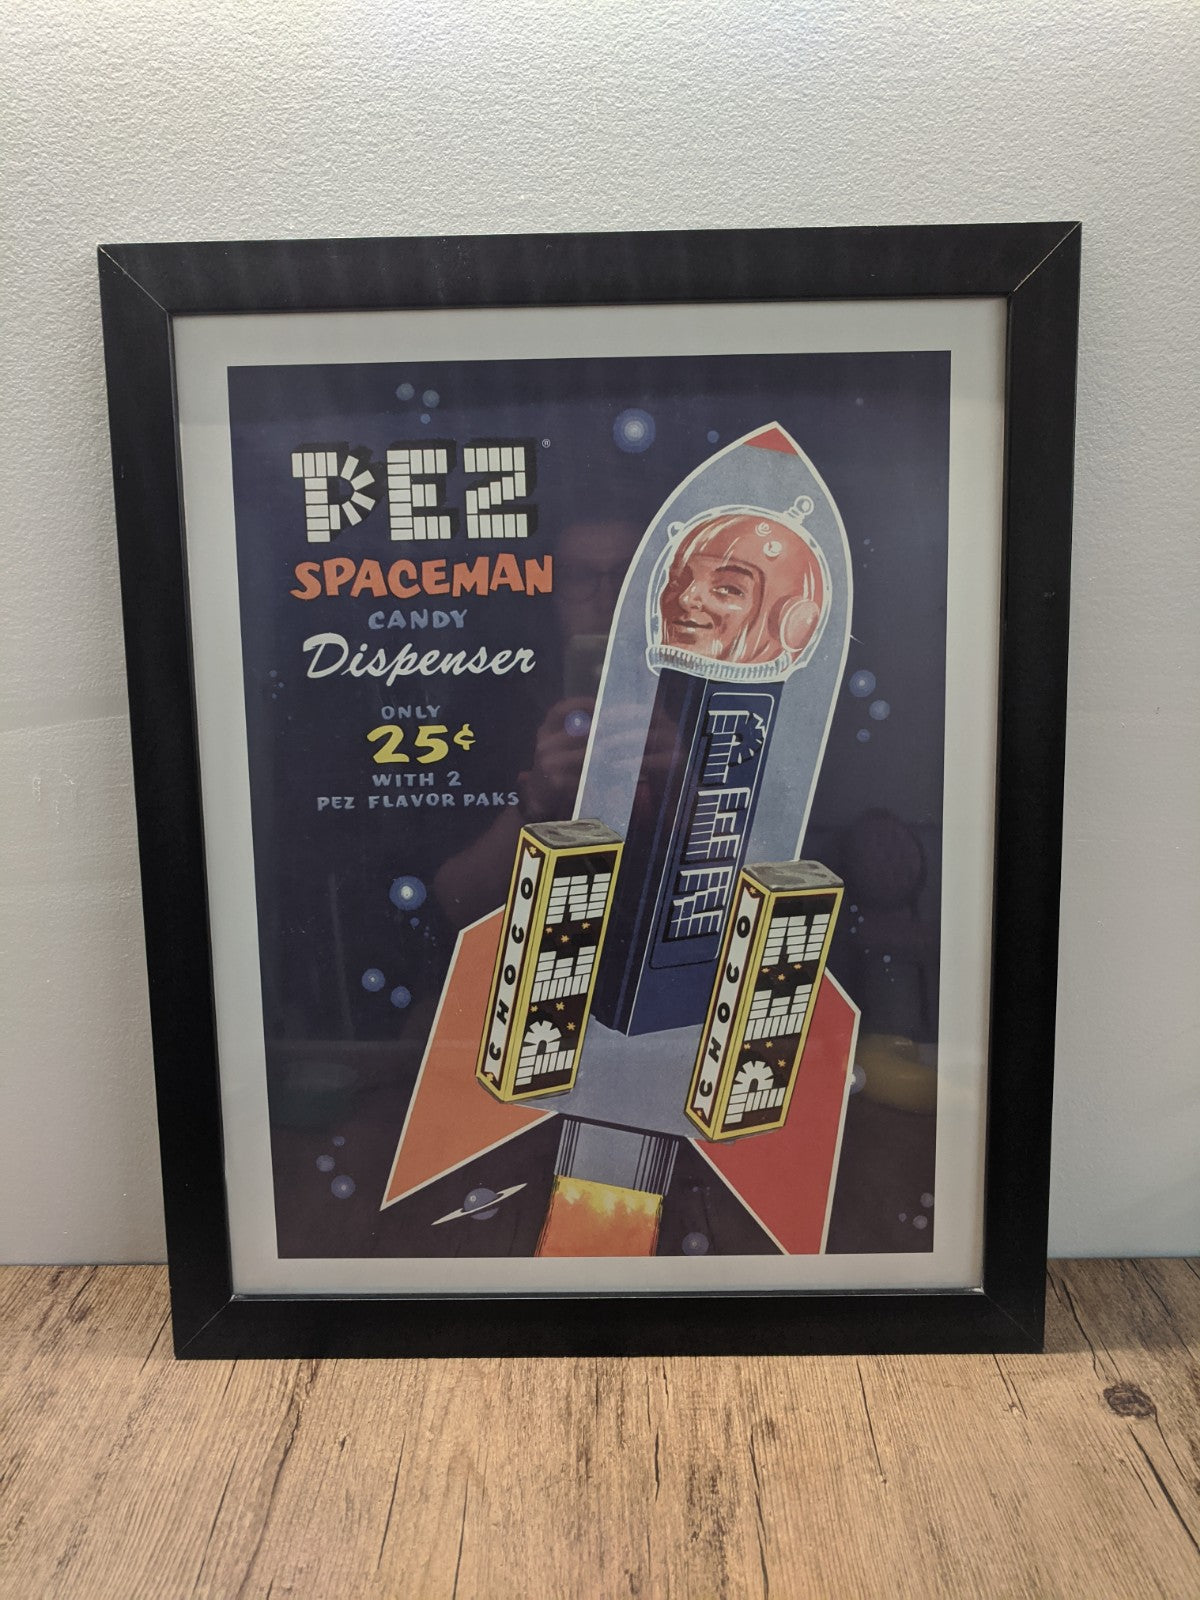 Pez Spaceman Candy Dispenser Framed Poster